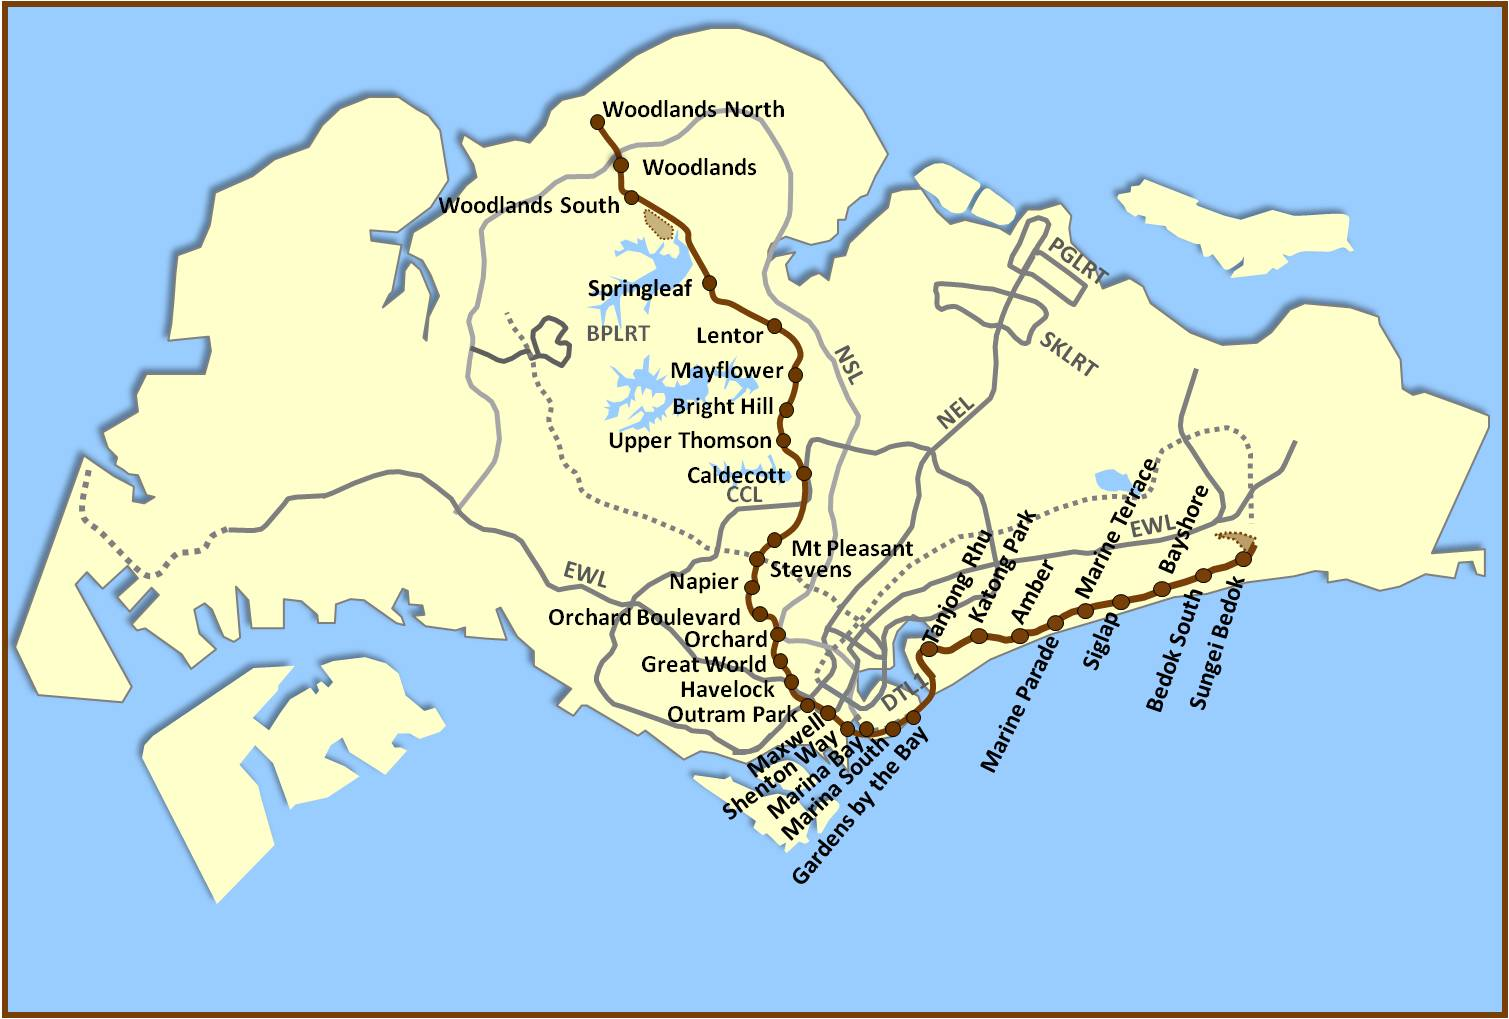 Thomson-East Coast MRT line map. Enjoy the convenience in Forestville